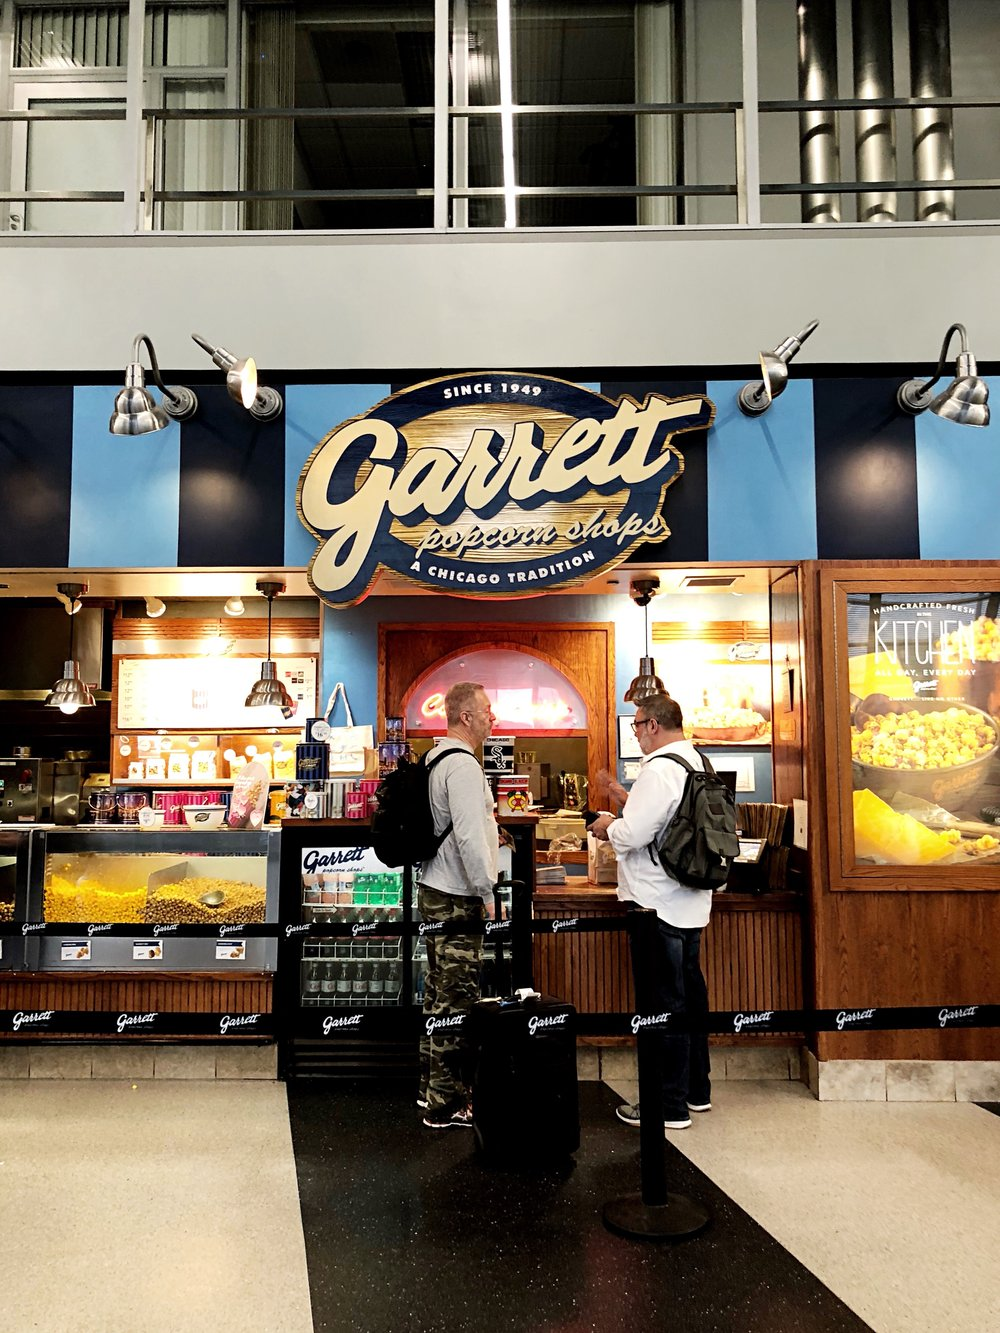 Yes I did run through the terminal and risked missing my flight just to try Garrett's for the first time...